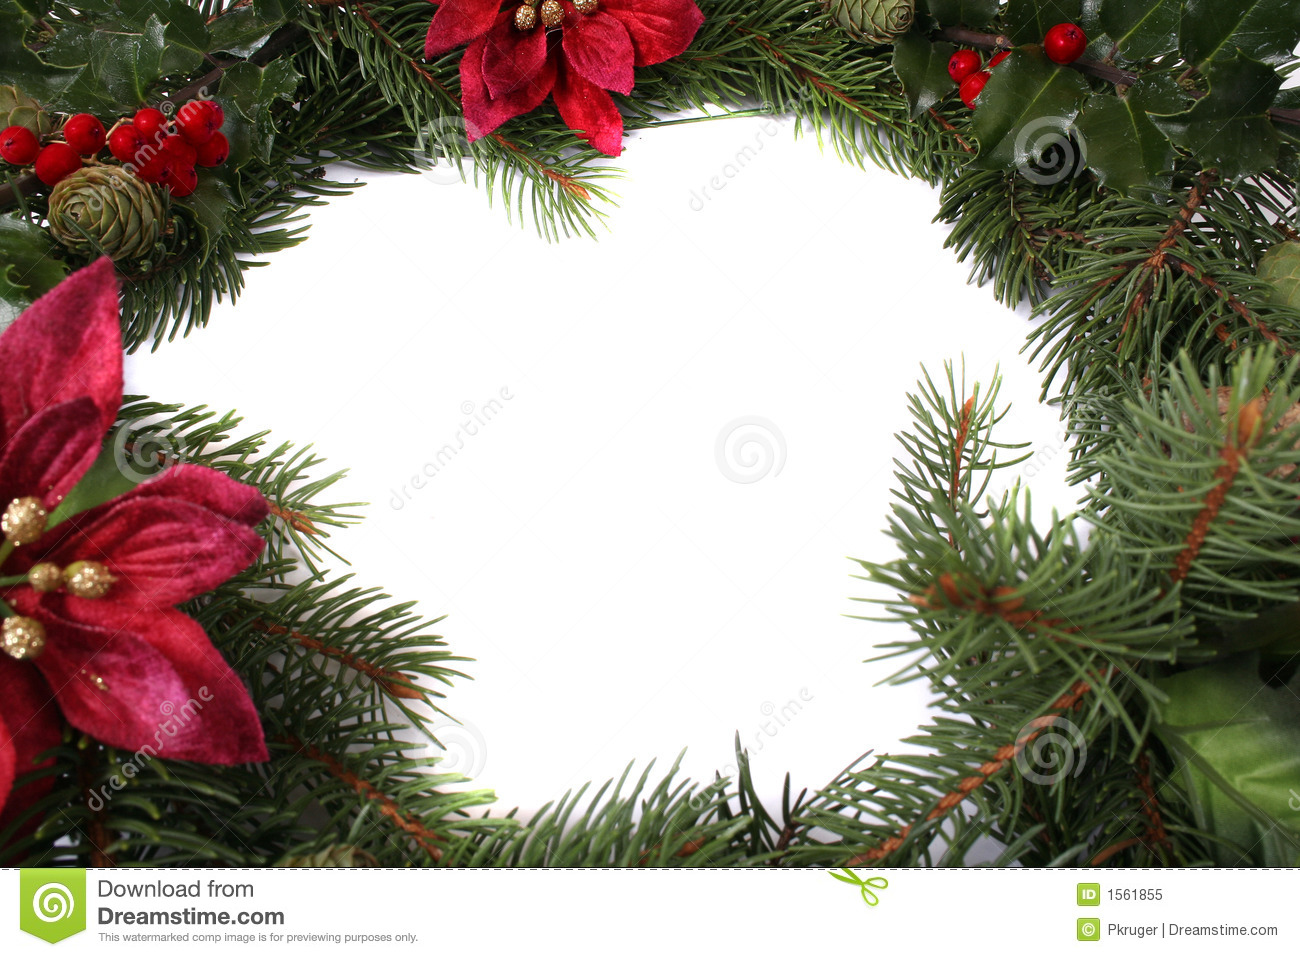 Christmas Wreath stock image. Image of leaf, background - 1561855